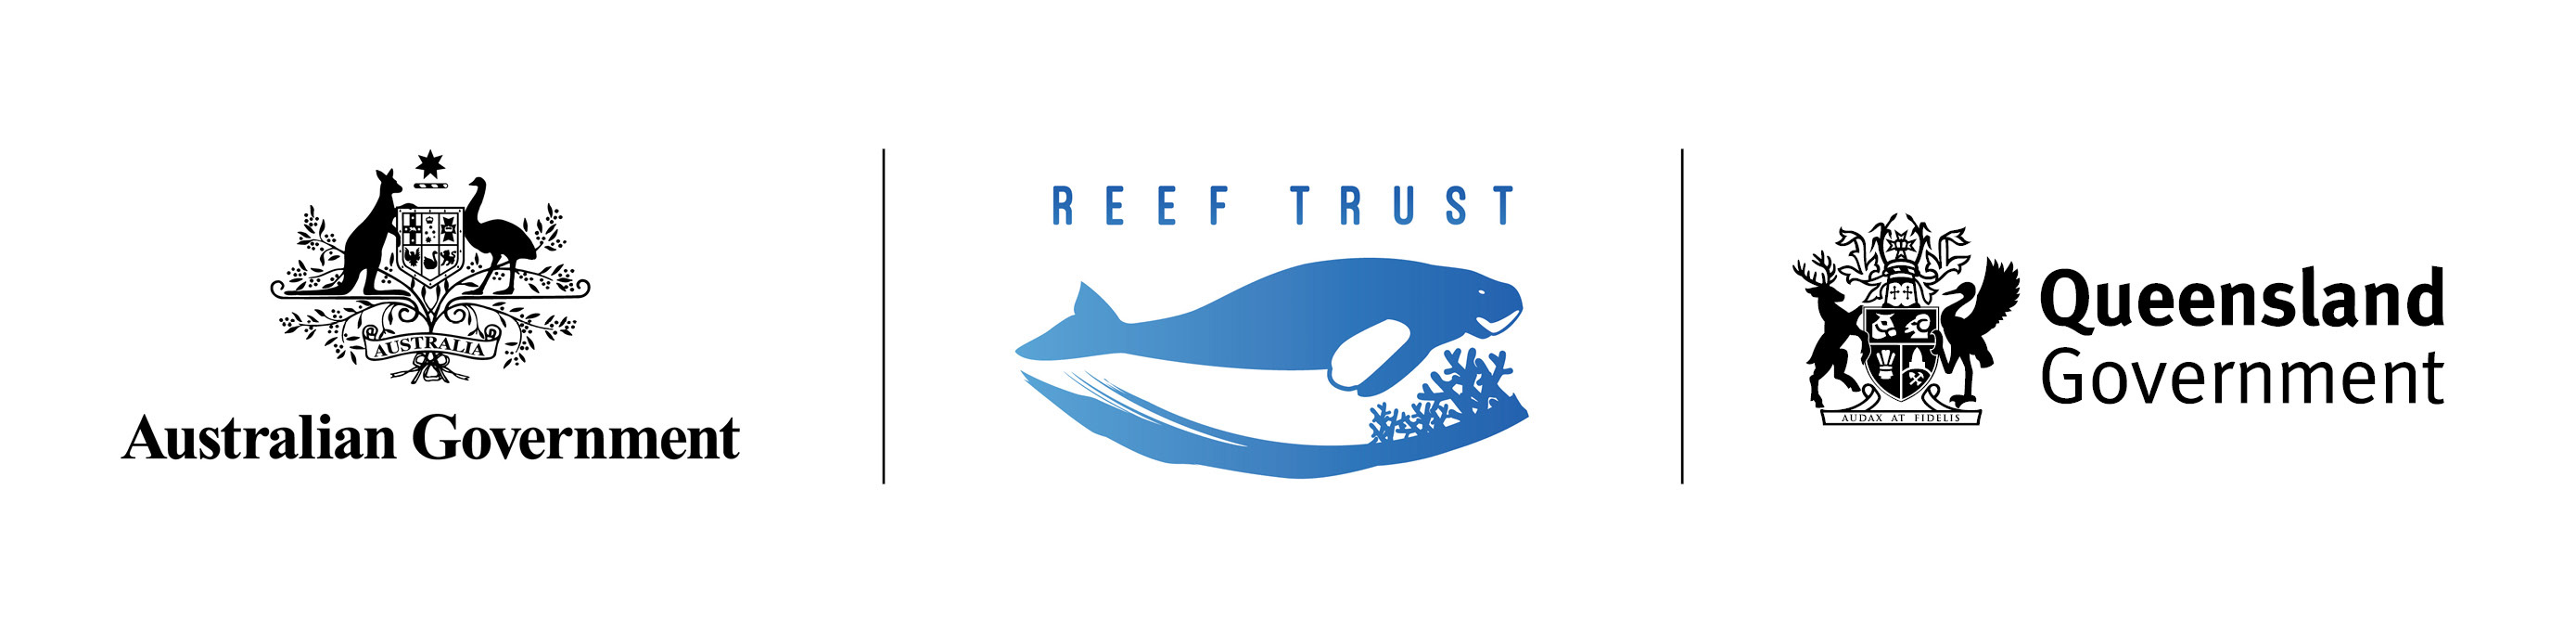 Australian Government, Reef Trust and Queensland Government logos